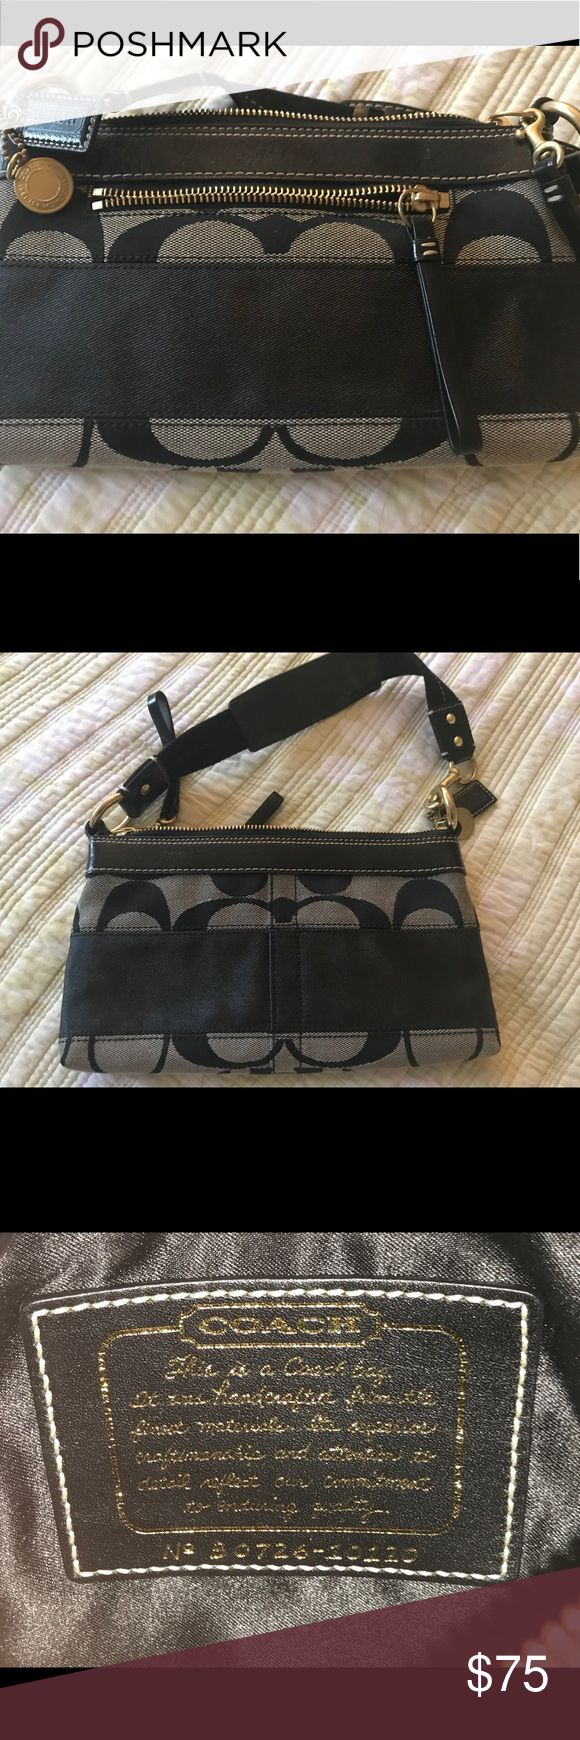 Coach clutch Coach Black and Tan canvas and leather clutch Coach Bags Clutches & Wristlets